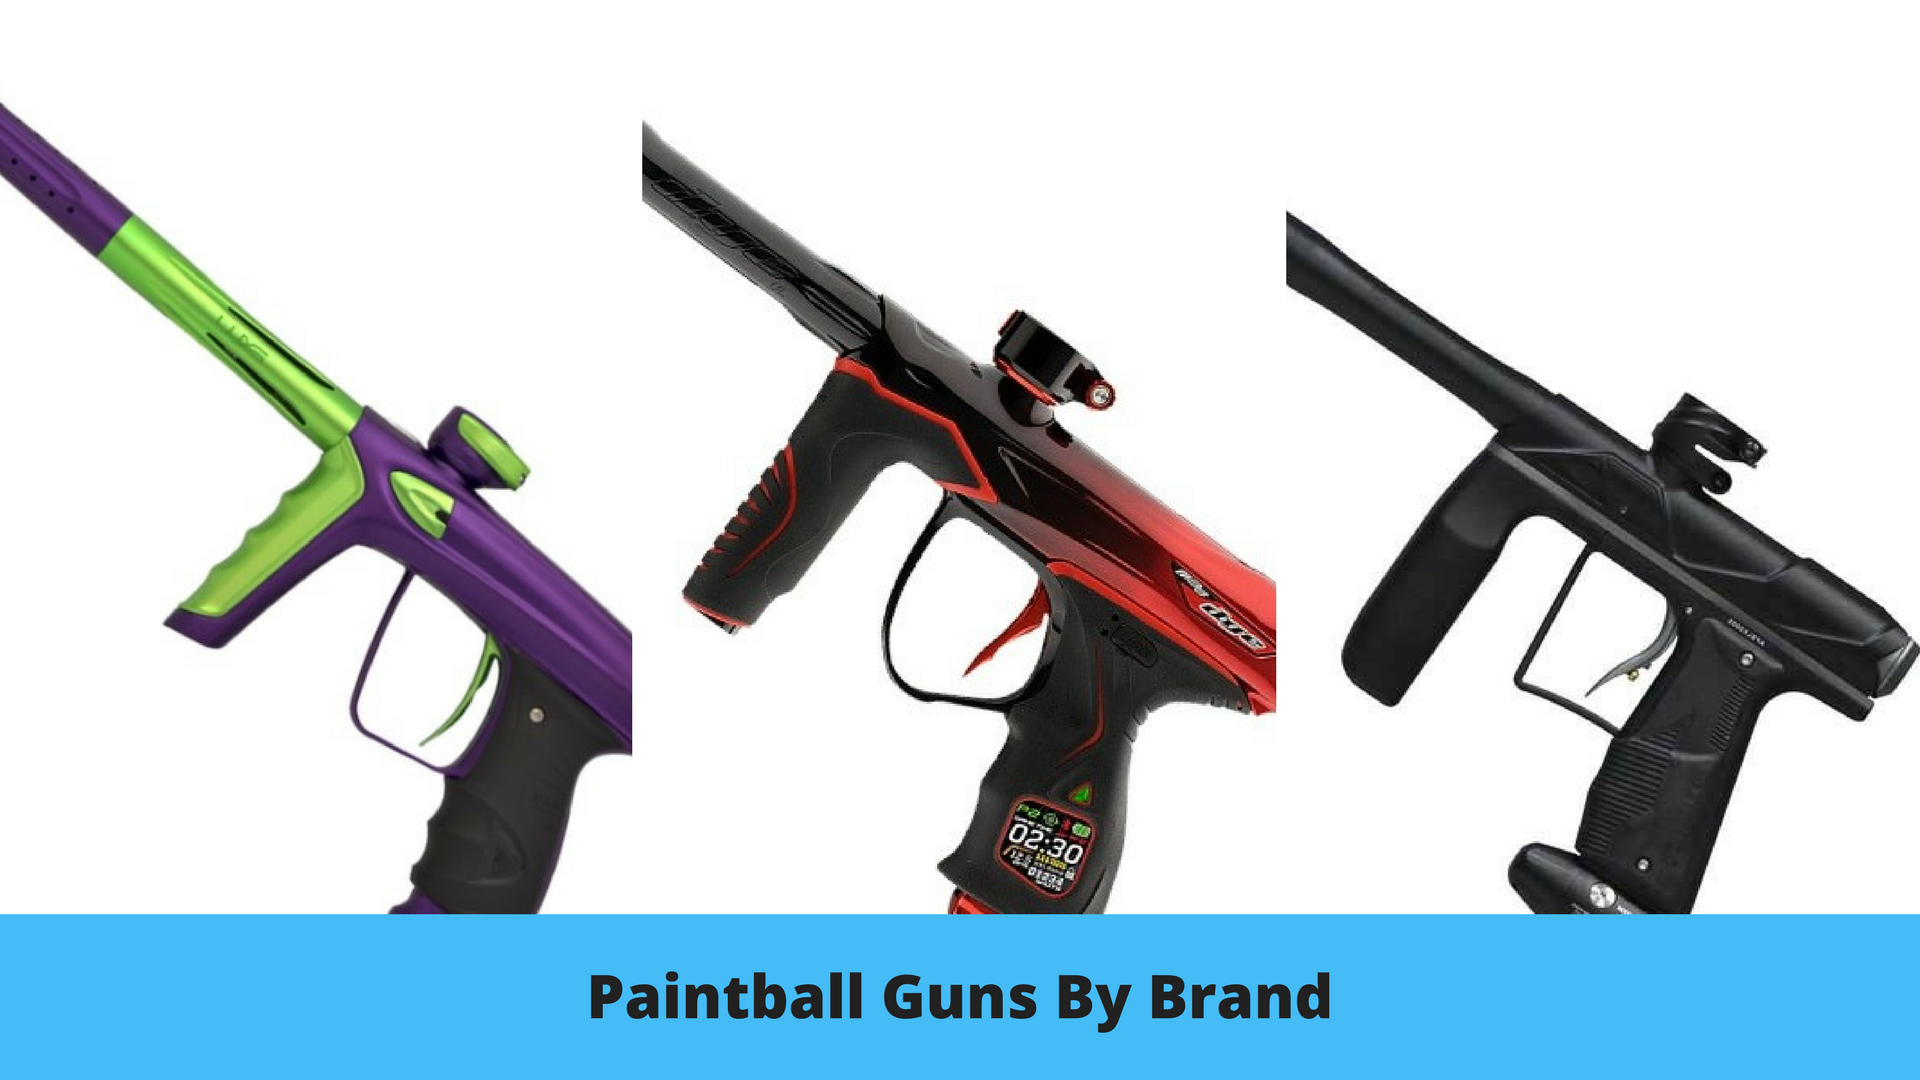 Paintball Guns By Brand